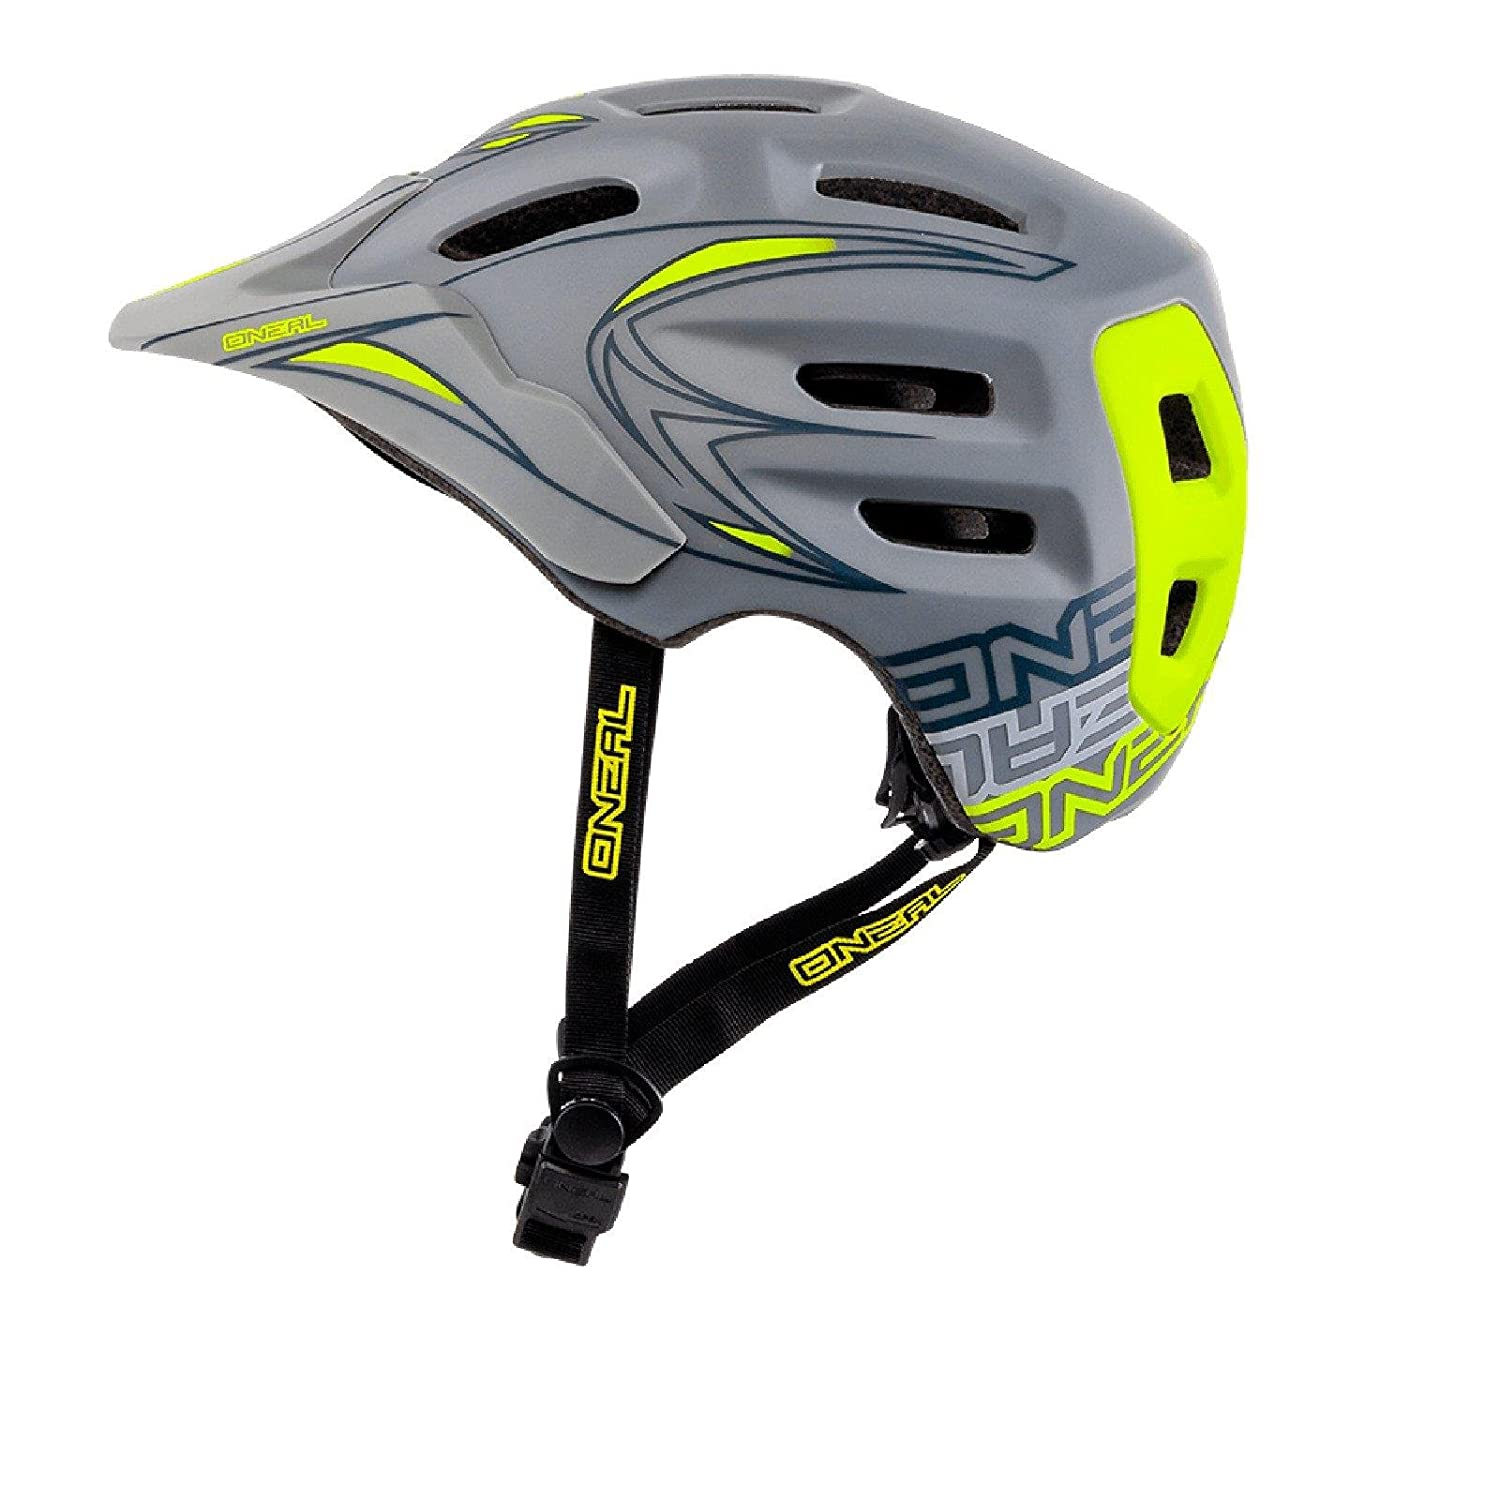 O& 039;Neal Defender Tribal Helm All Mountain Grau Gelb All Mountain Enduro Trail MTB Fahrrad, 0502D-60